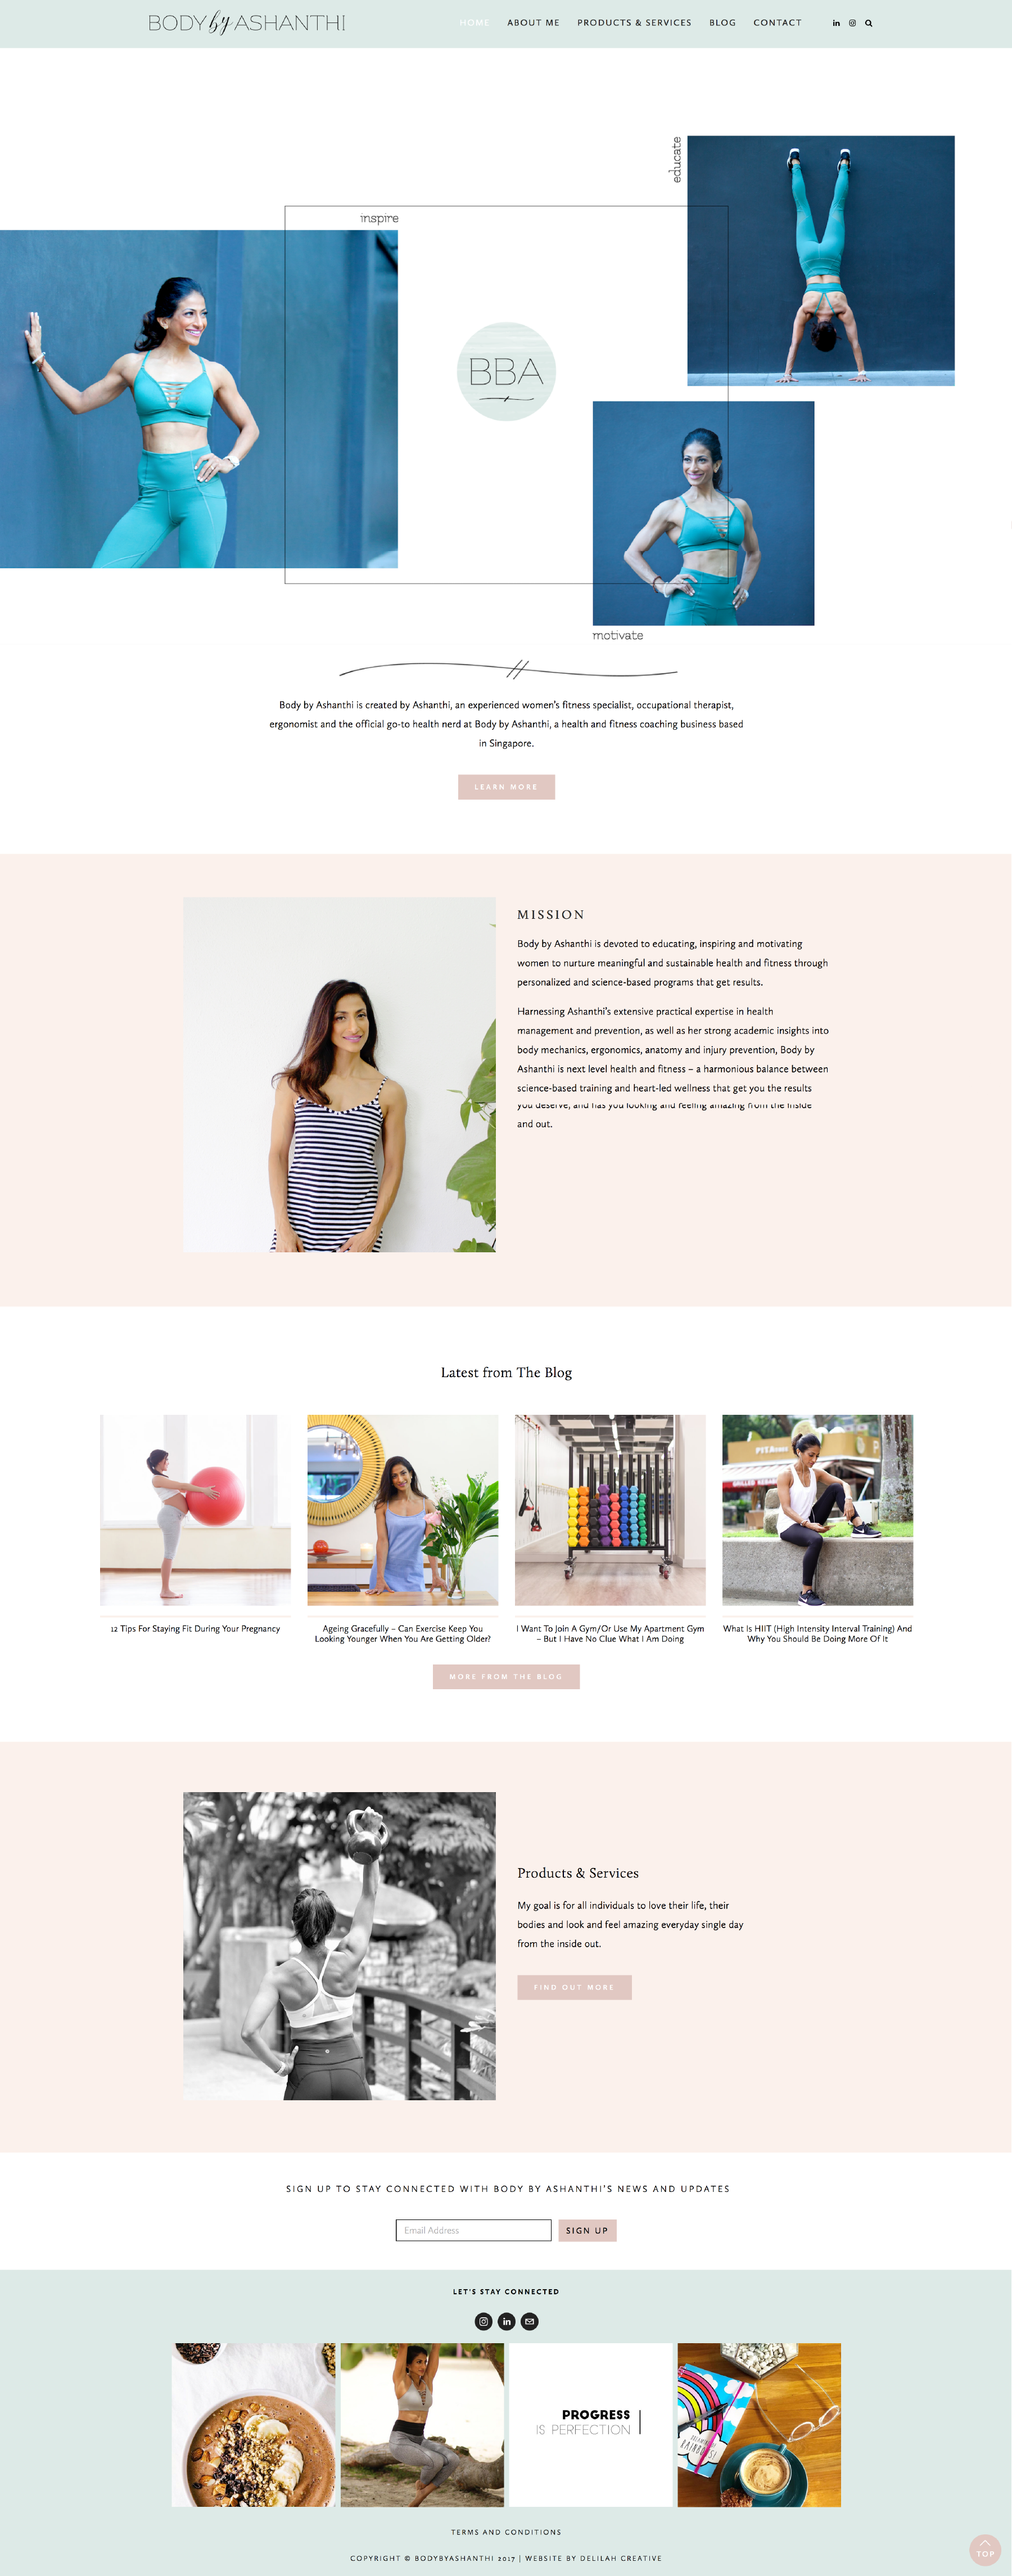 Logo and Squarespace Website Design for Personal Trainer and Nutritionist, Body by Ashanthi by Delilah Creative | www.delilahcreative.com